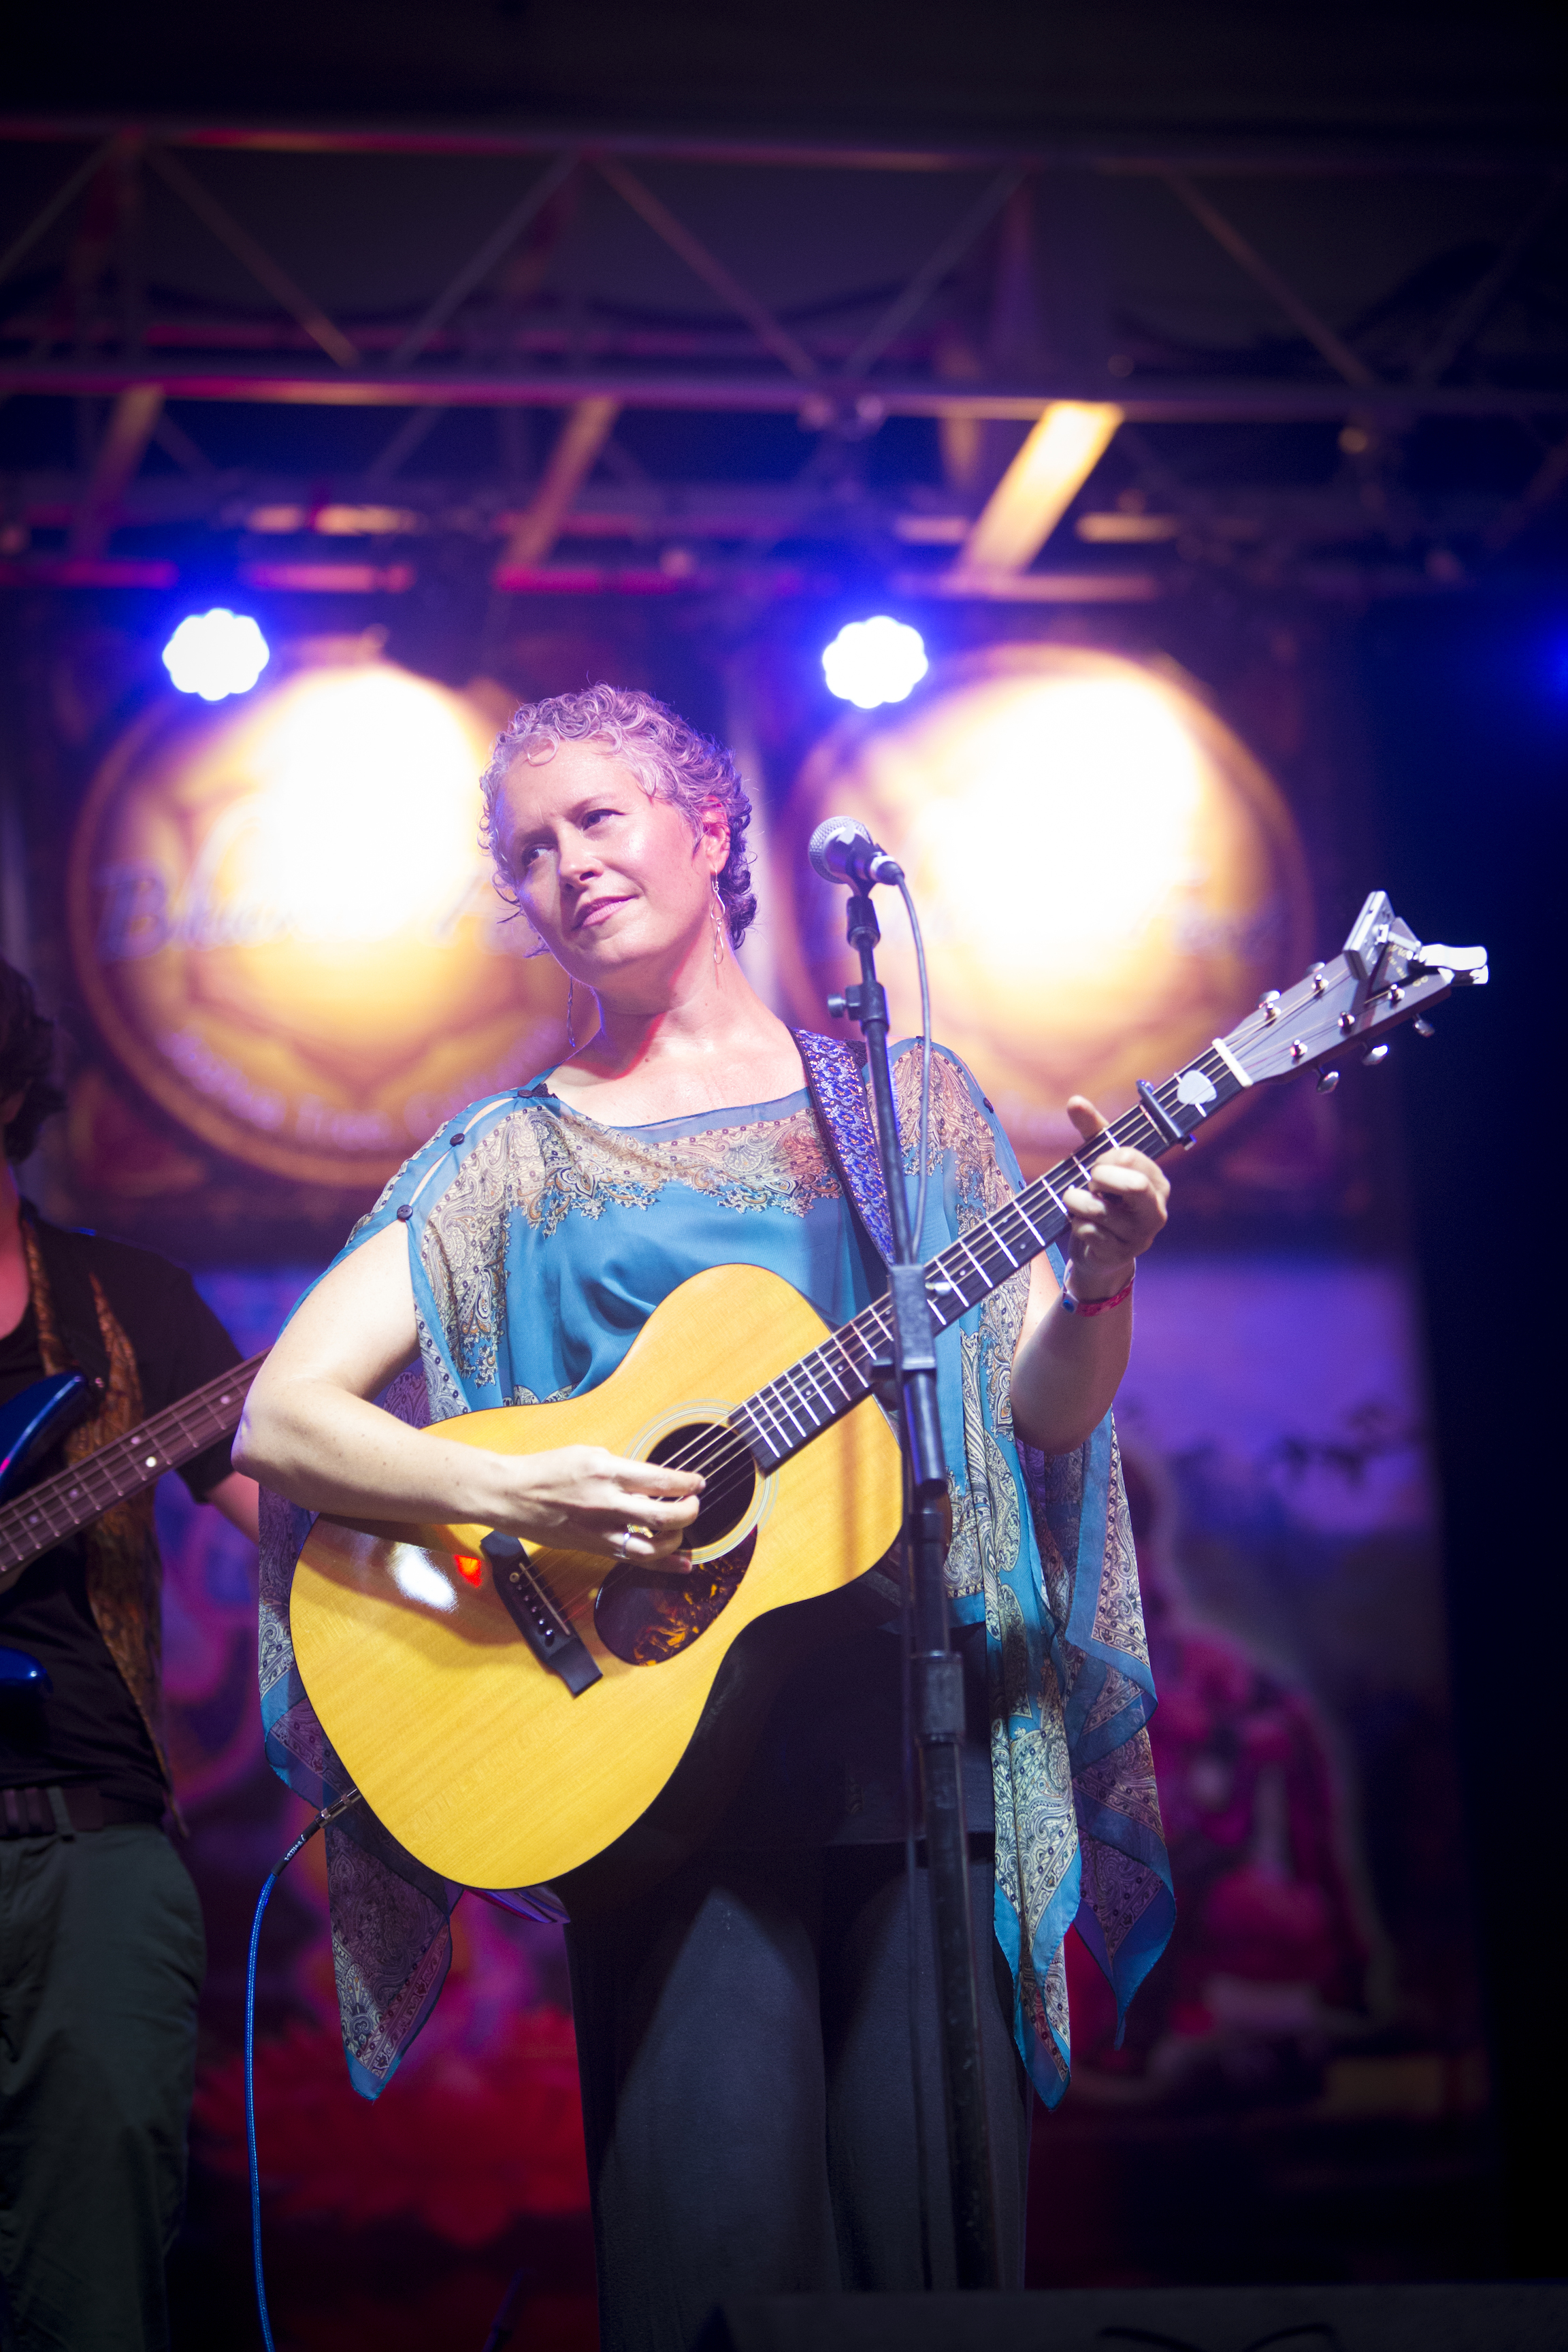 Brenda at Bhakti Fest Midwest, 2014 - photo by Mitchell Manz